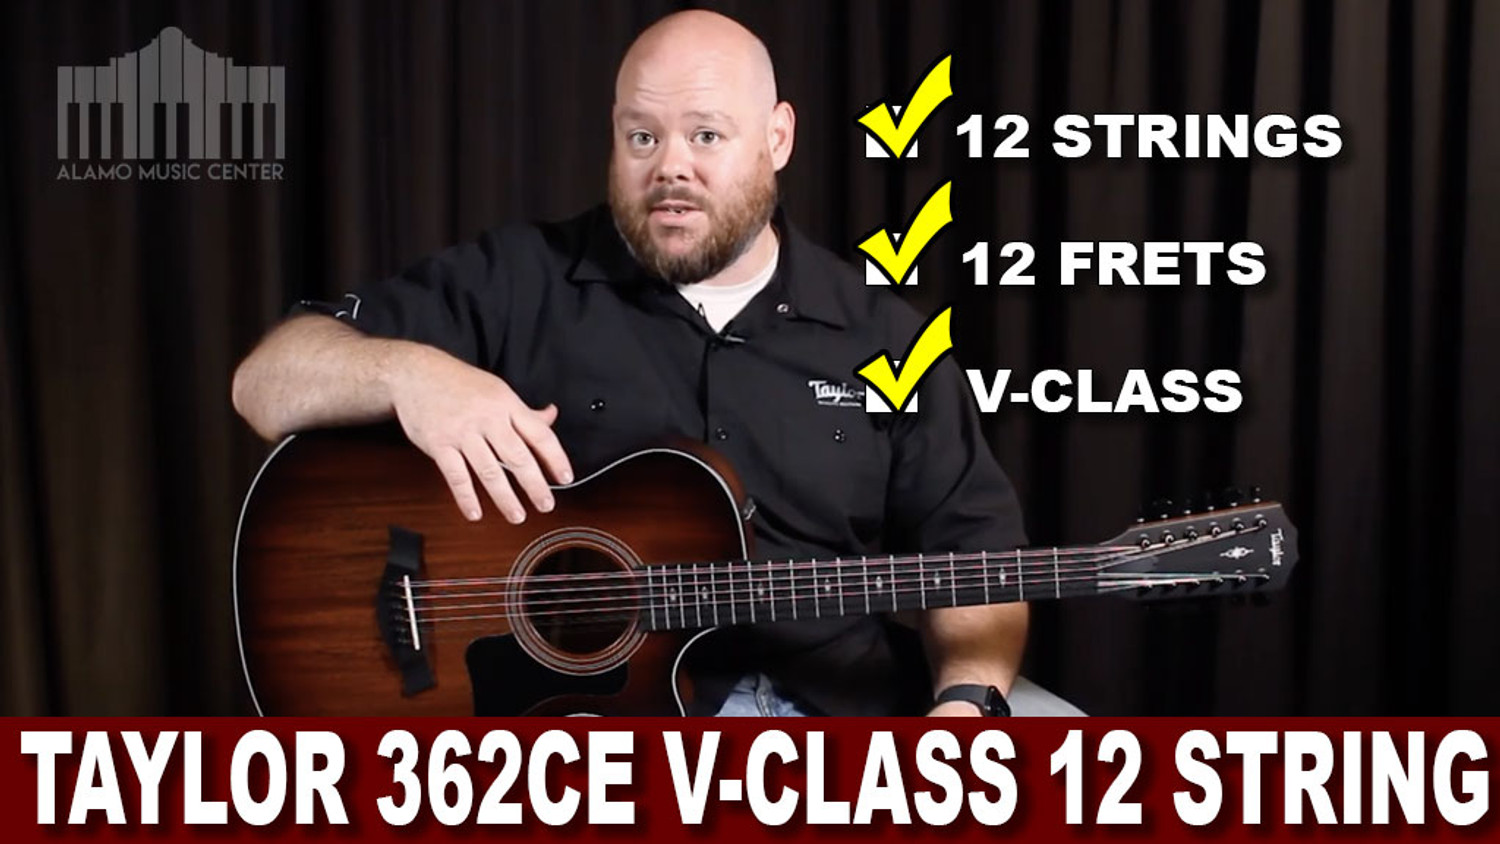 Taylor Guitars' 362ce Review | 12 strings, 12 frets and V-class Bracing